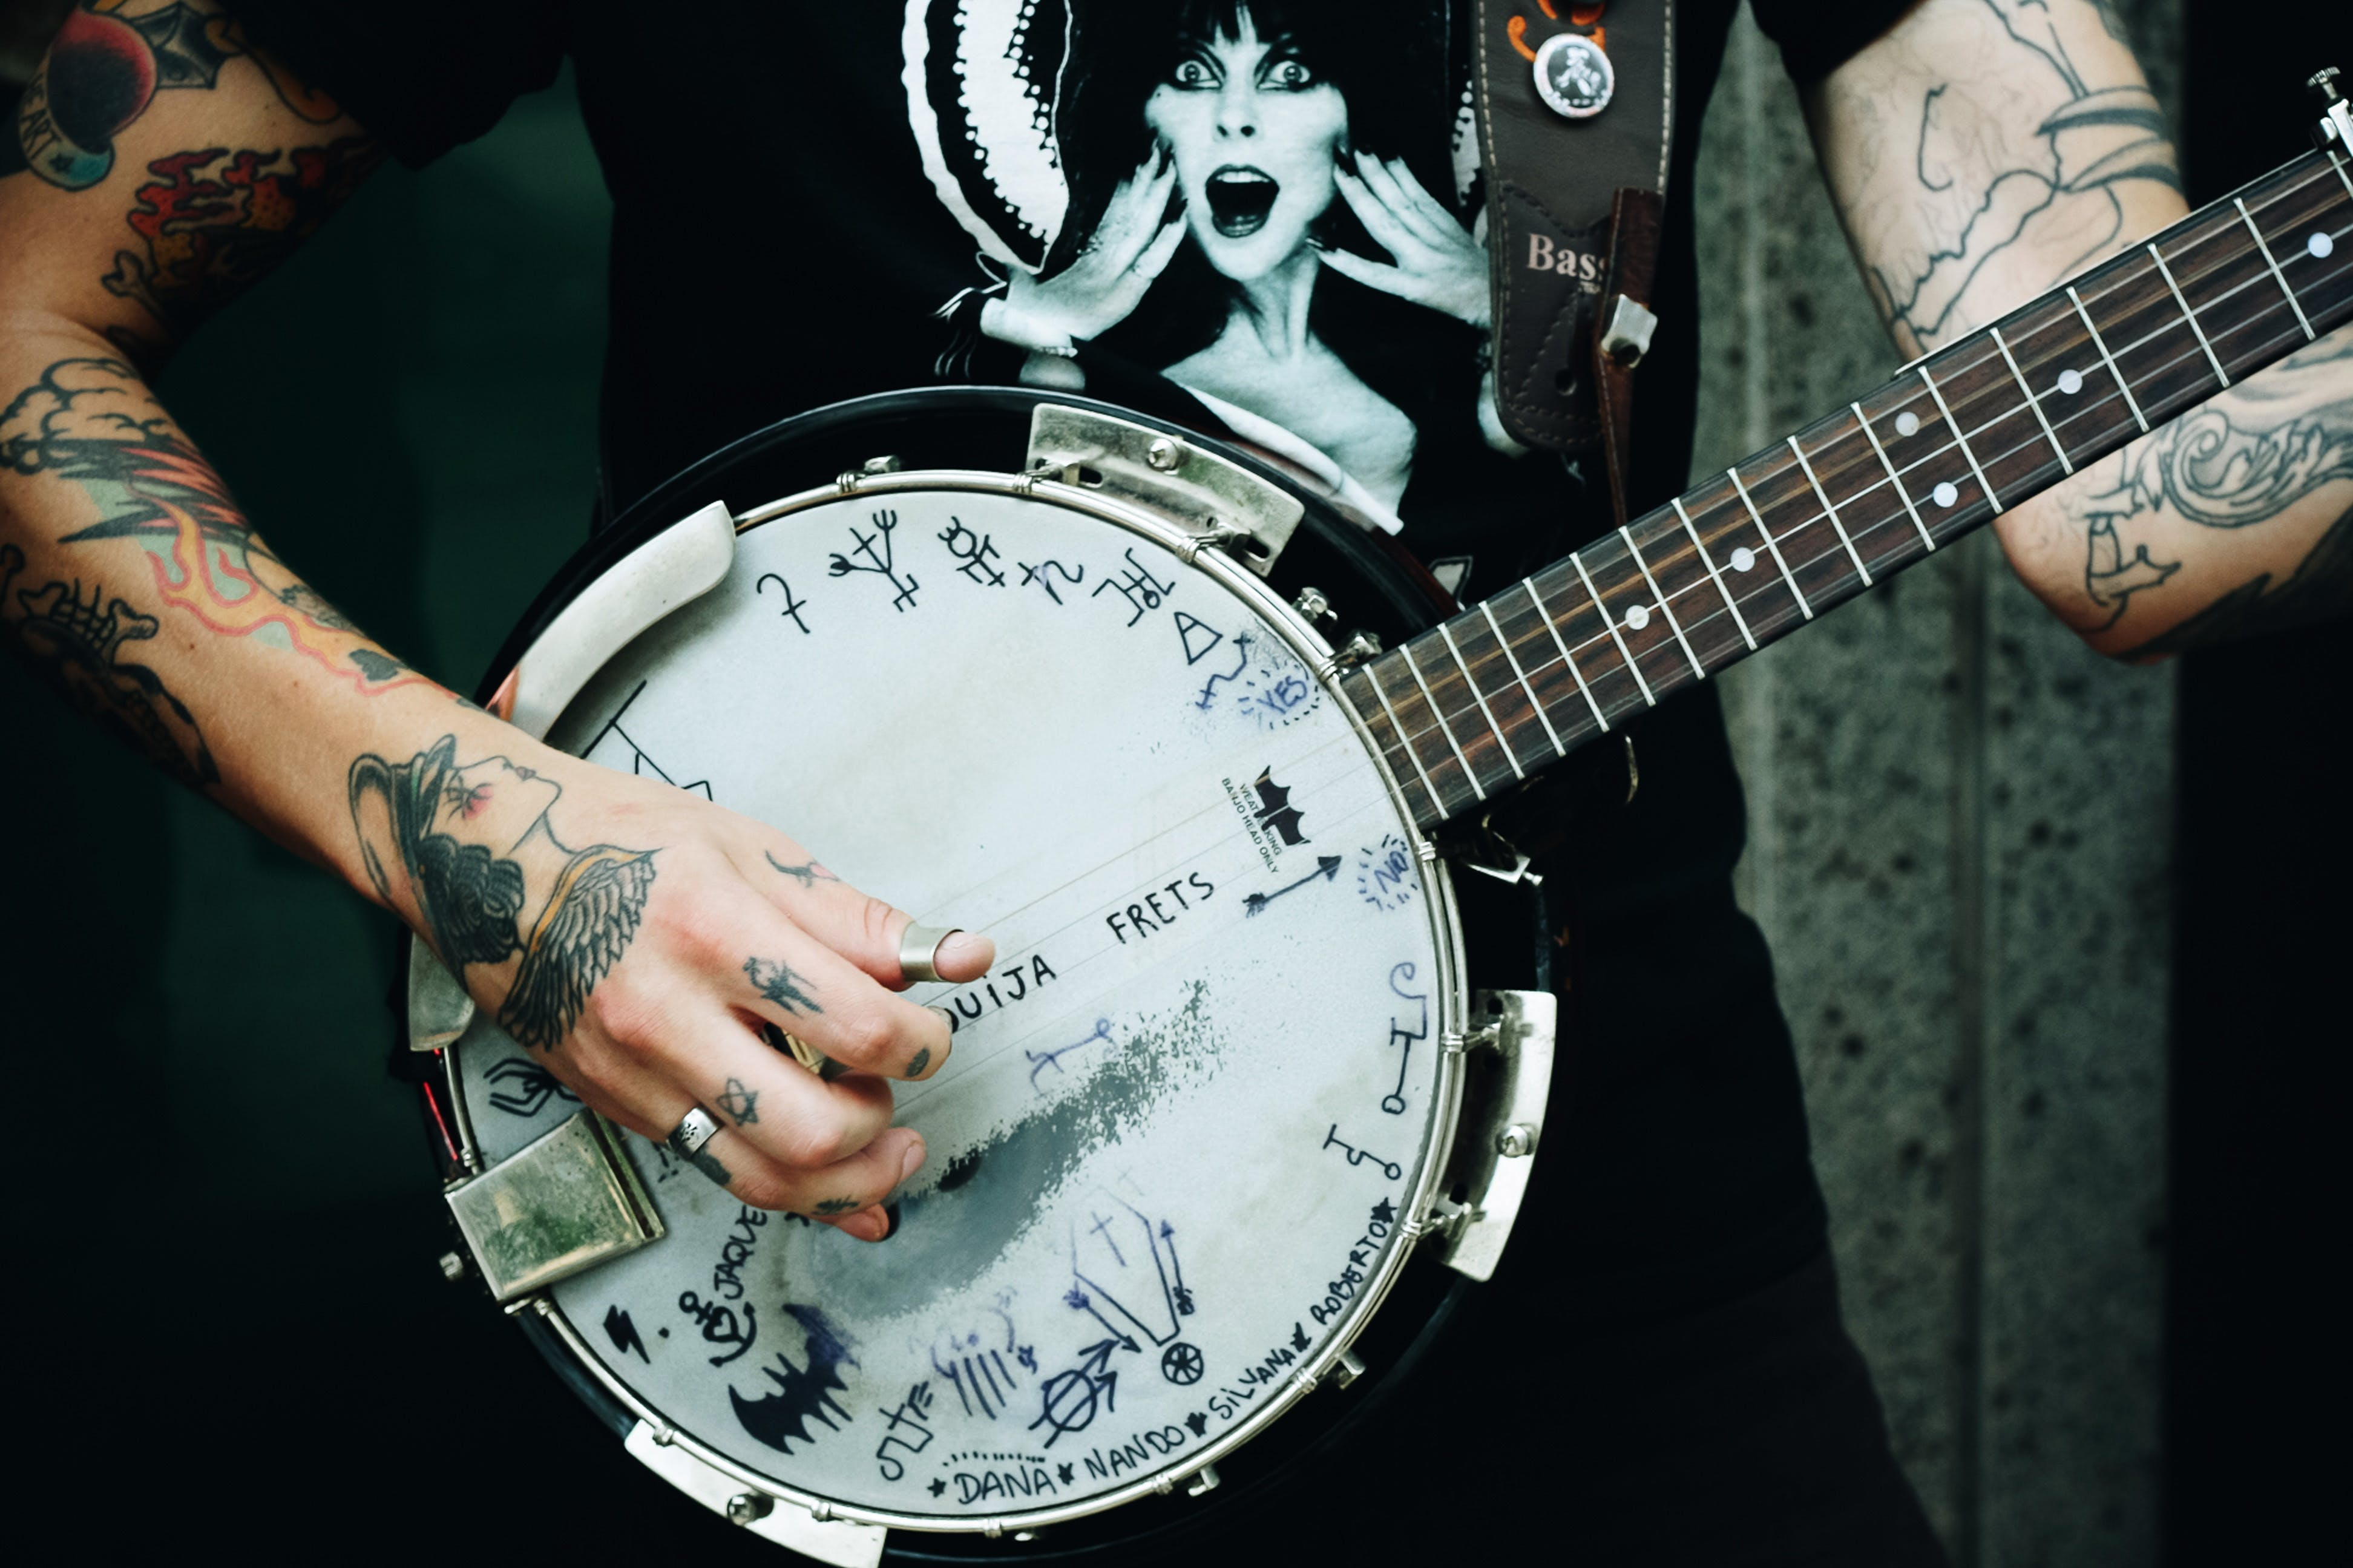 Person Holding Banjo